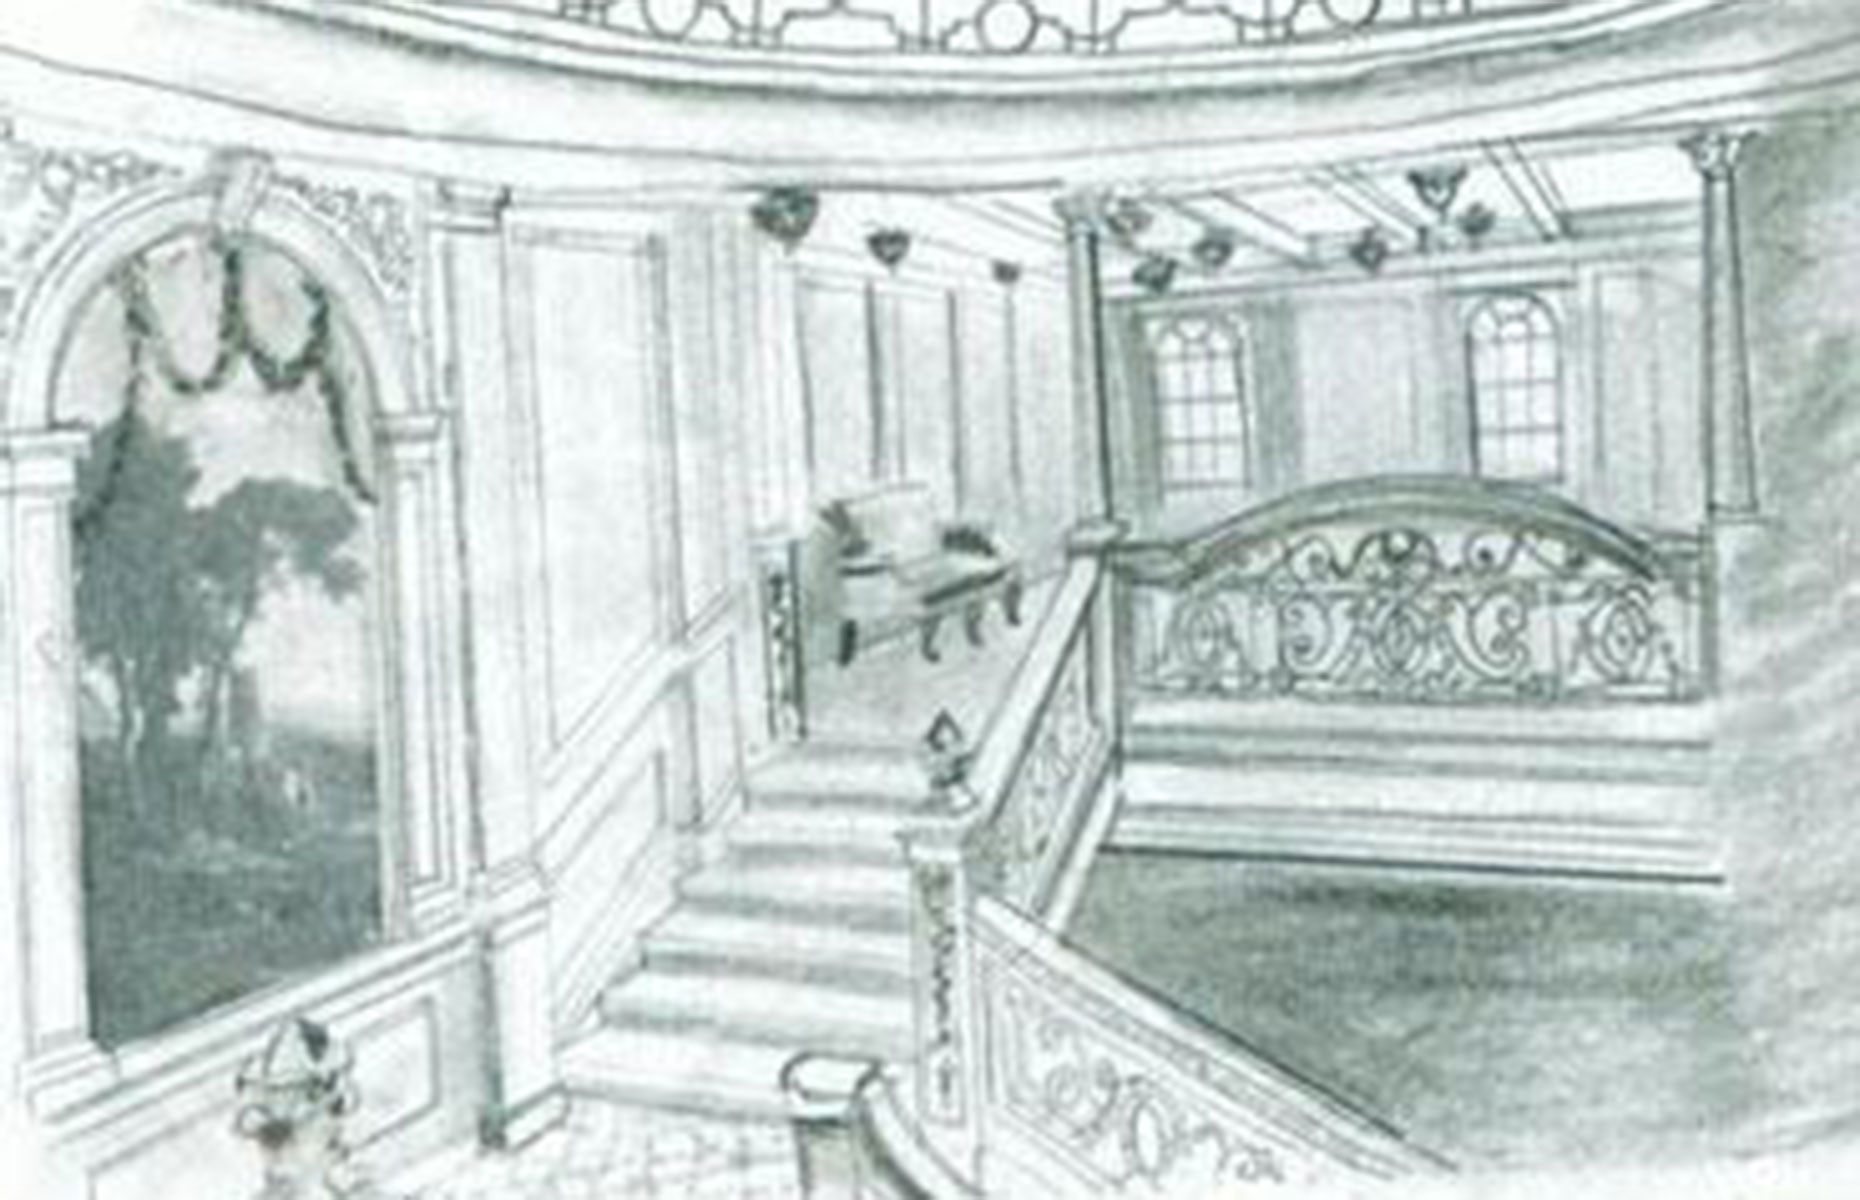 A drawing of the first-class staircase on the Britannic (Image: Unknown author/Public domain/Public domain/via Wikimedia Commons)